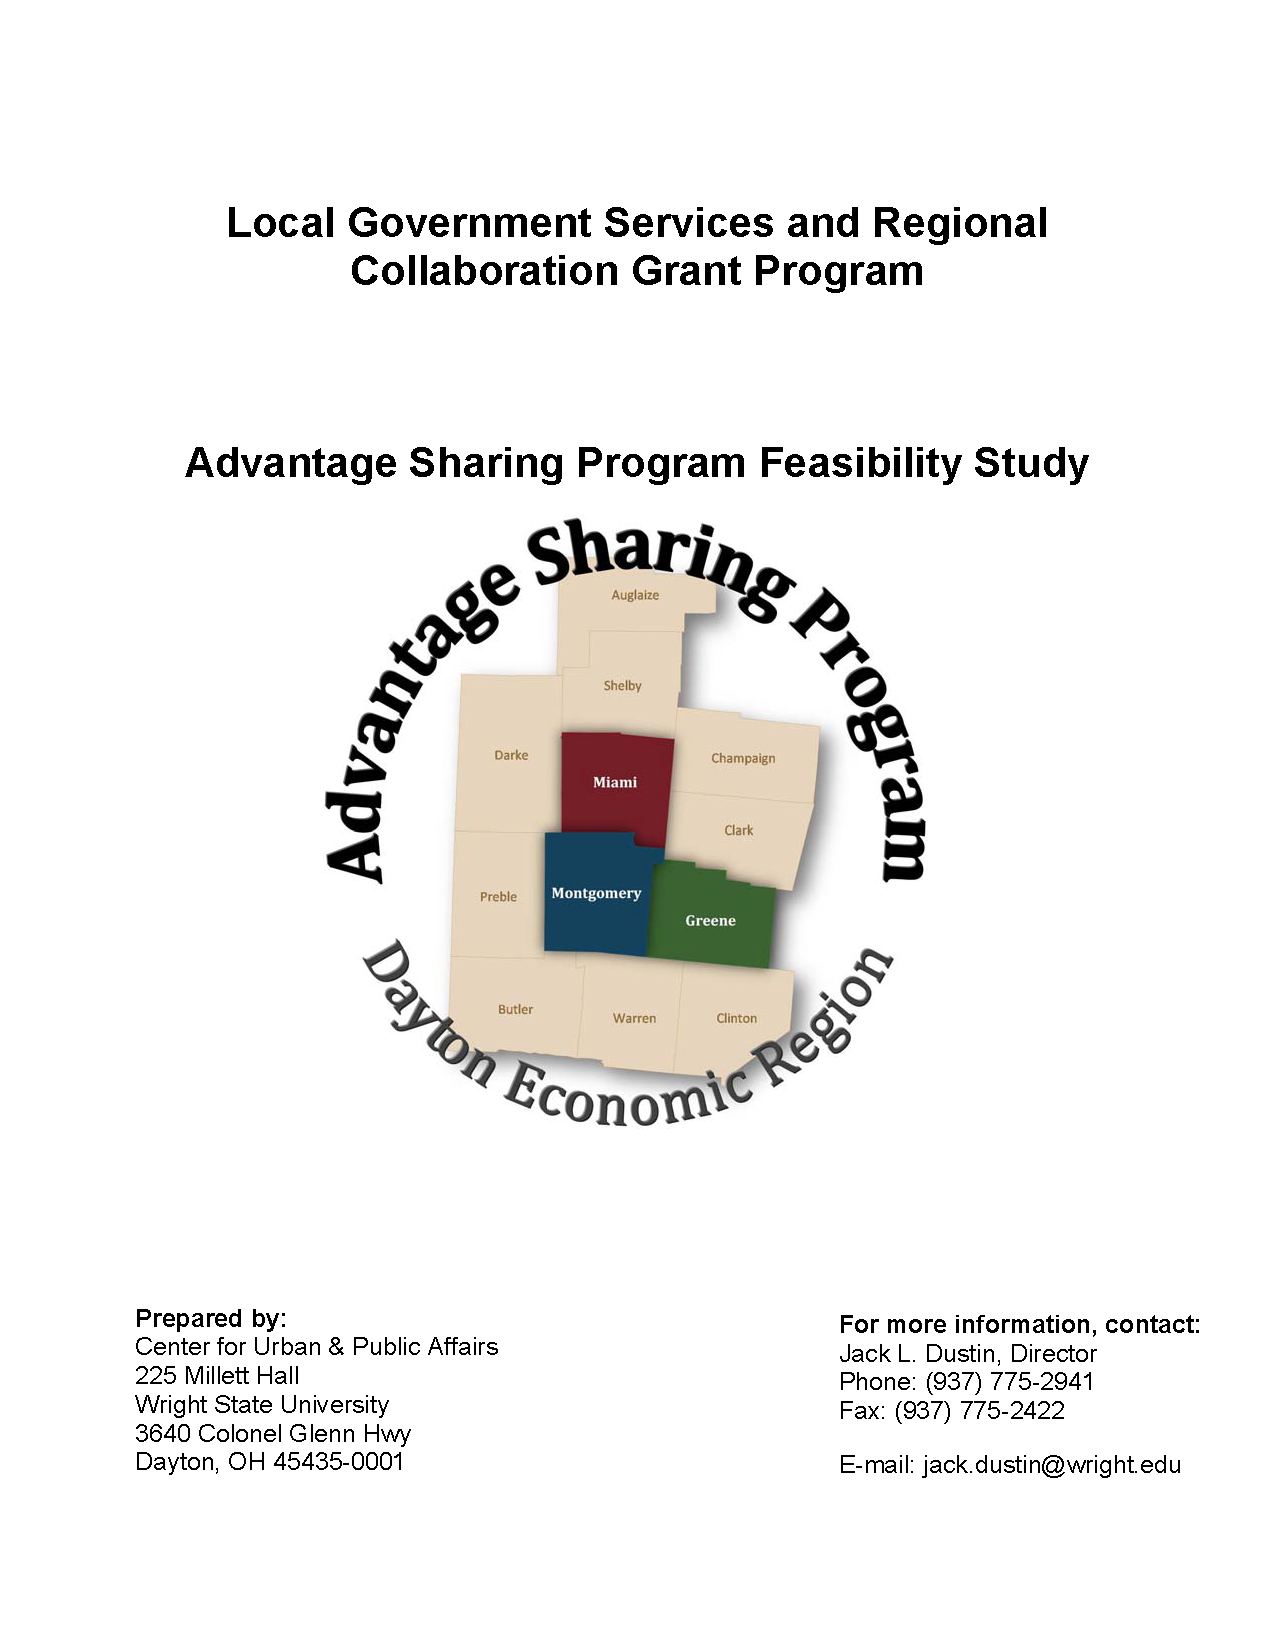 2010 Local Government Services and Regional Collaboration Grant Program Report_COVER.png